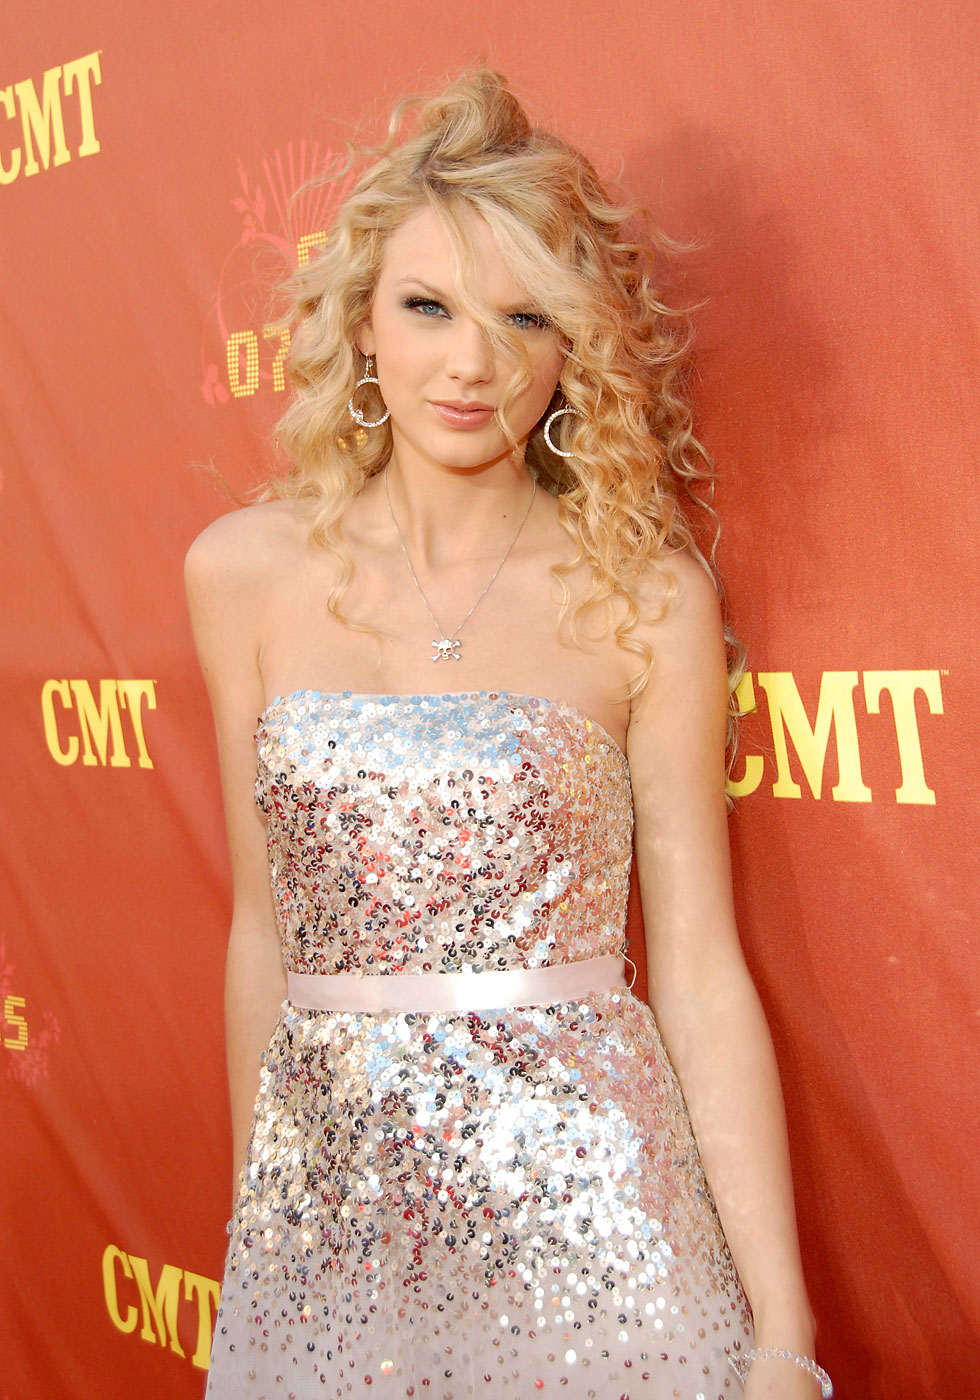 Taylor Swift arrives at the 2007 CMT Music Awards.